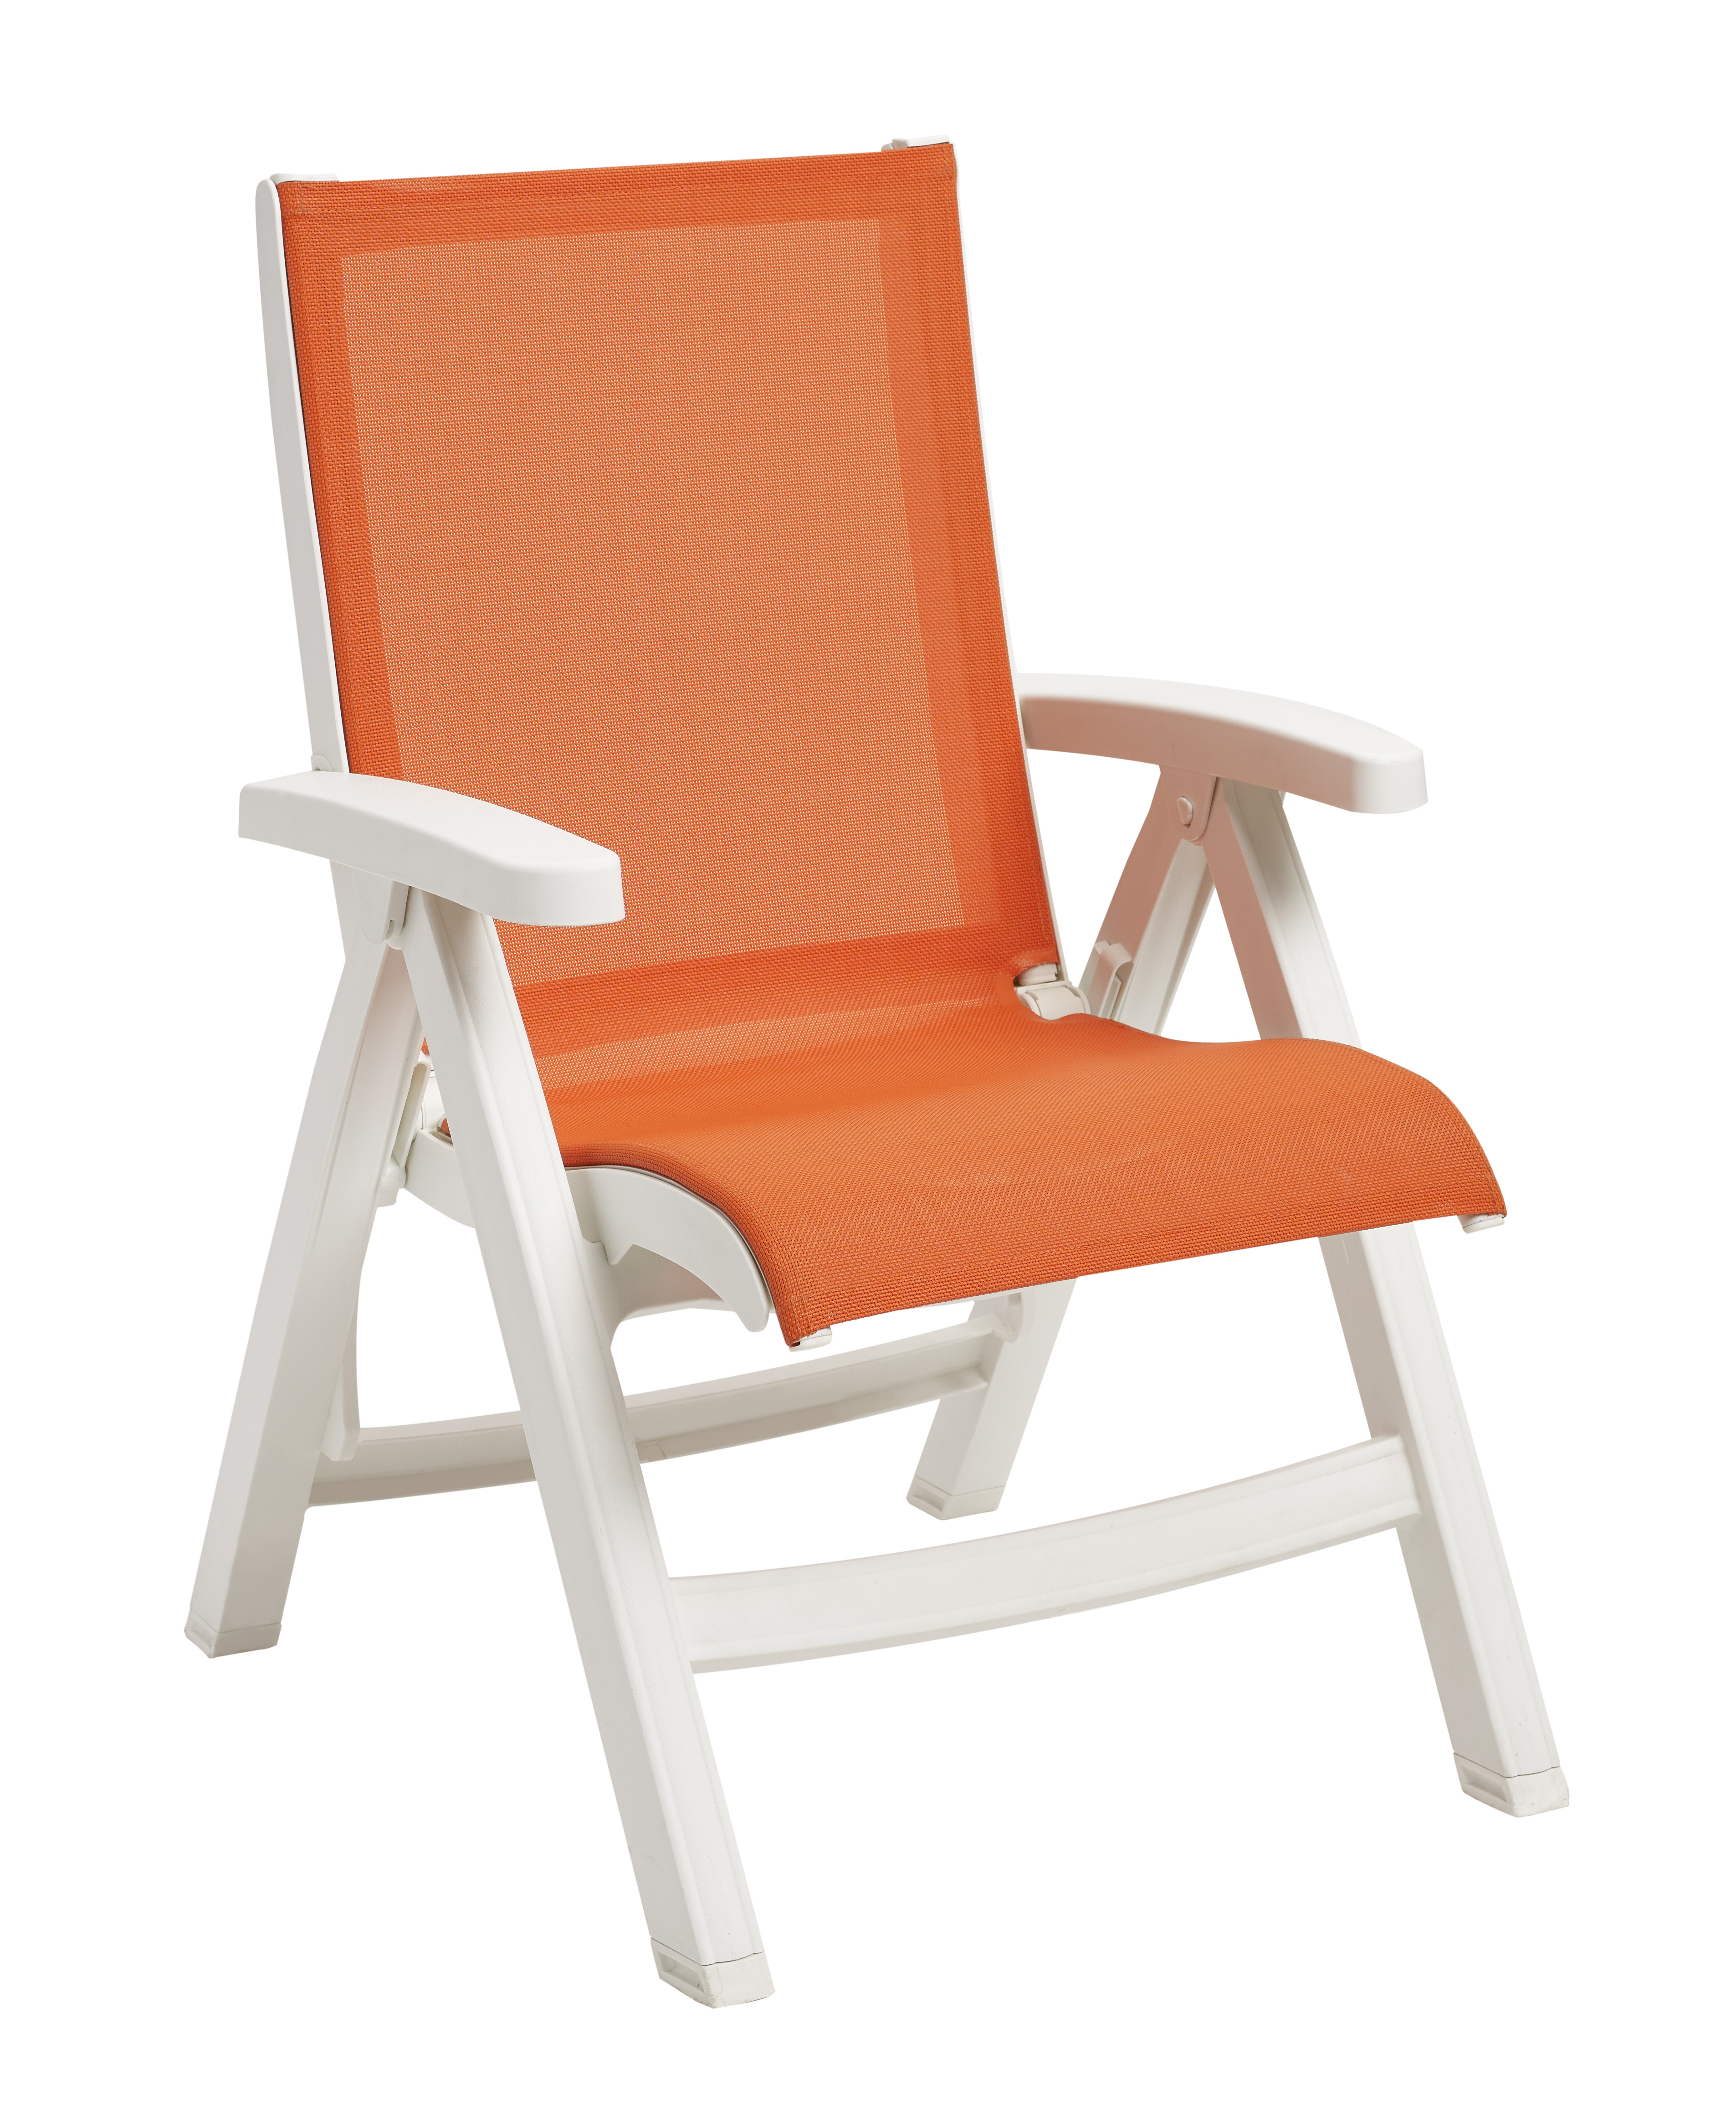 Belize Midback Folding Resin Patio Dining Chair